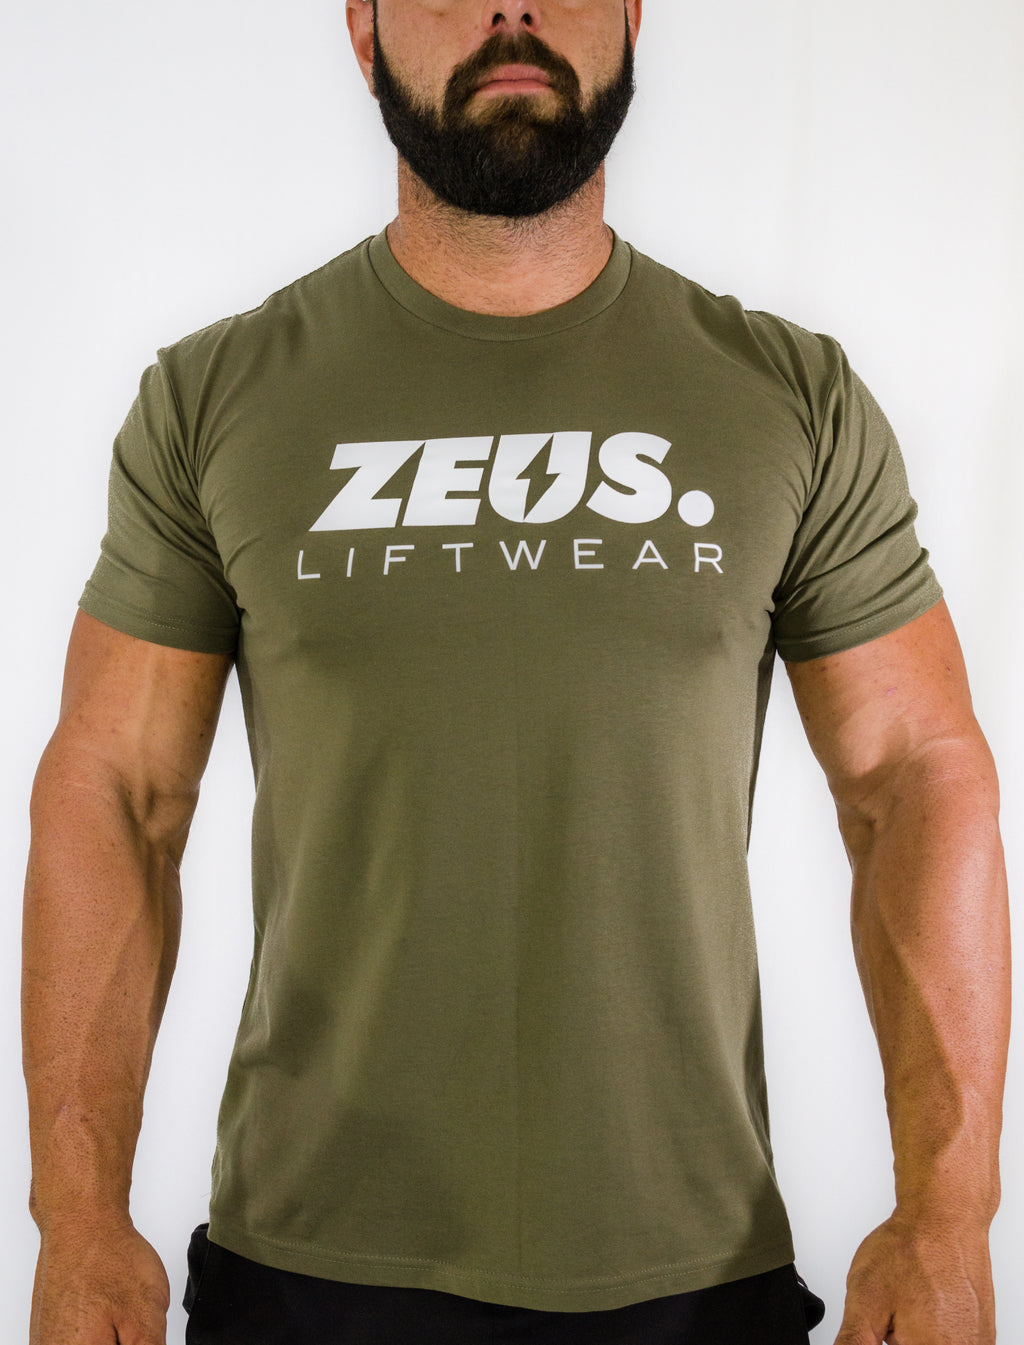 Zeus T-Shirt (Army/White)